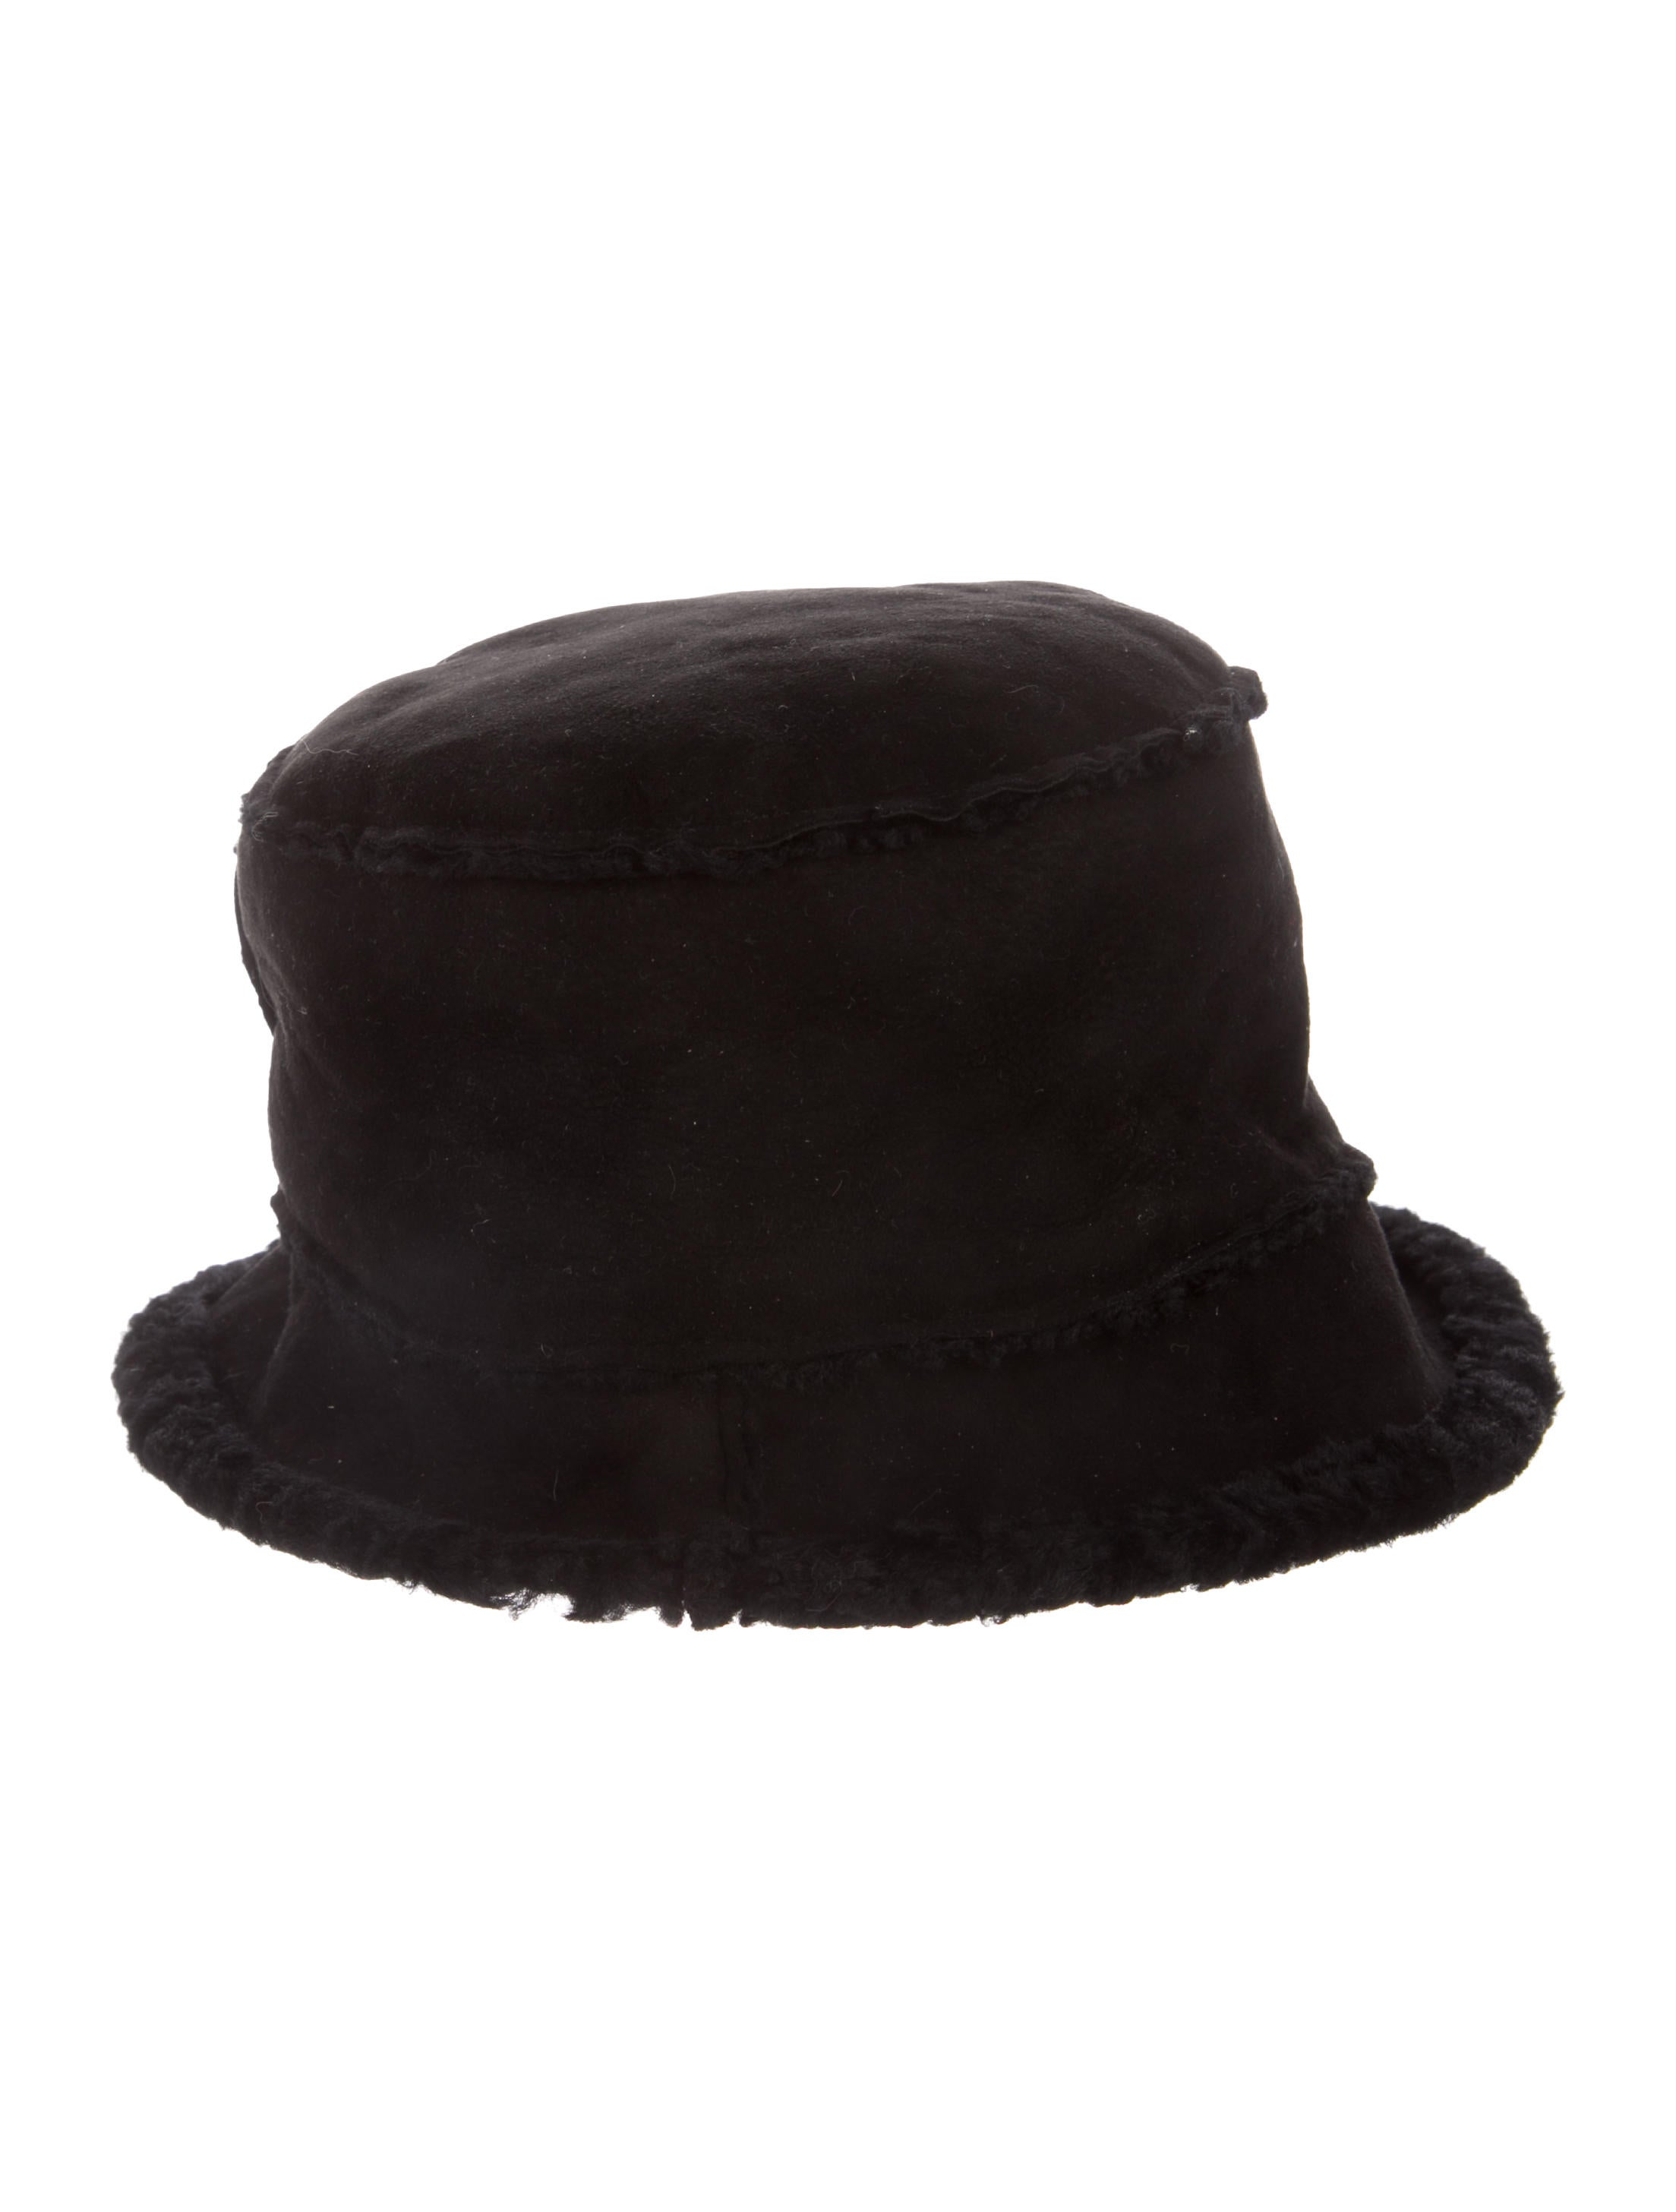 9bfc14a5 Barney's Suede Bucket Hat - Accessories - BAR20597 | The RealReal